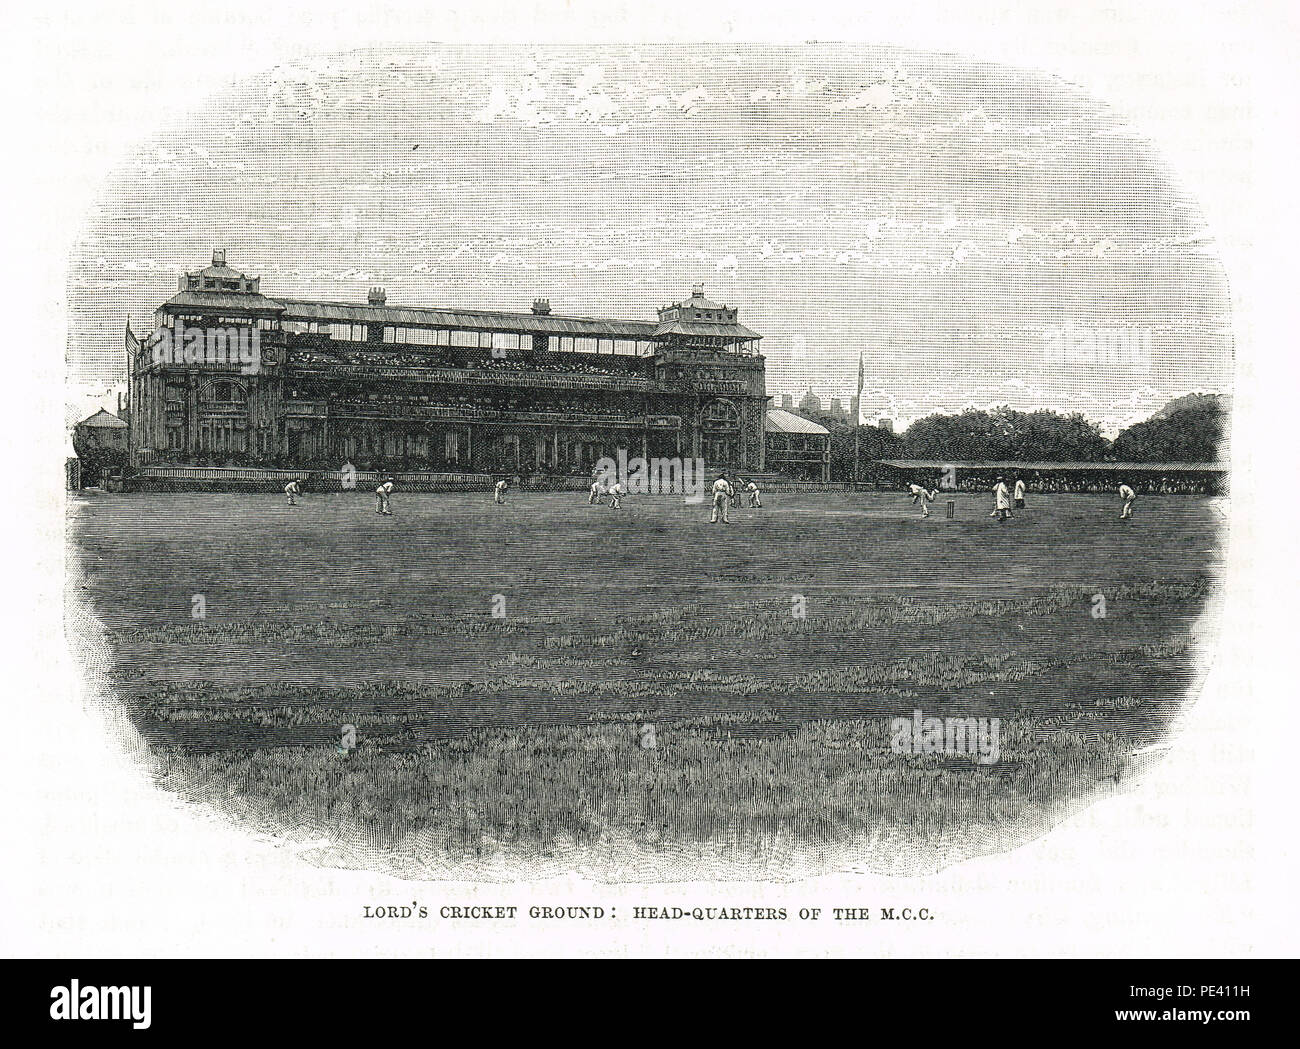 Lord's Cricket Ground, sede de la M C C vista del siglo XIX. Imagen De Stock